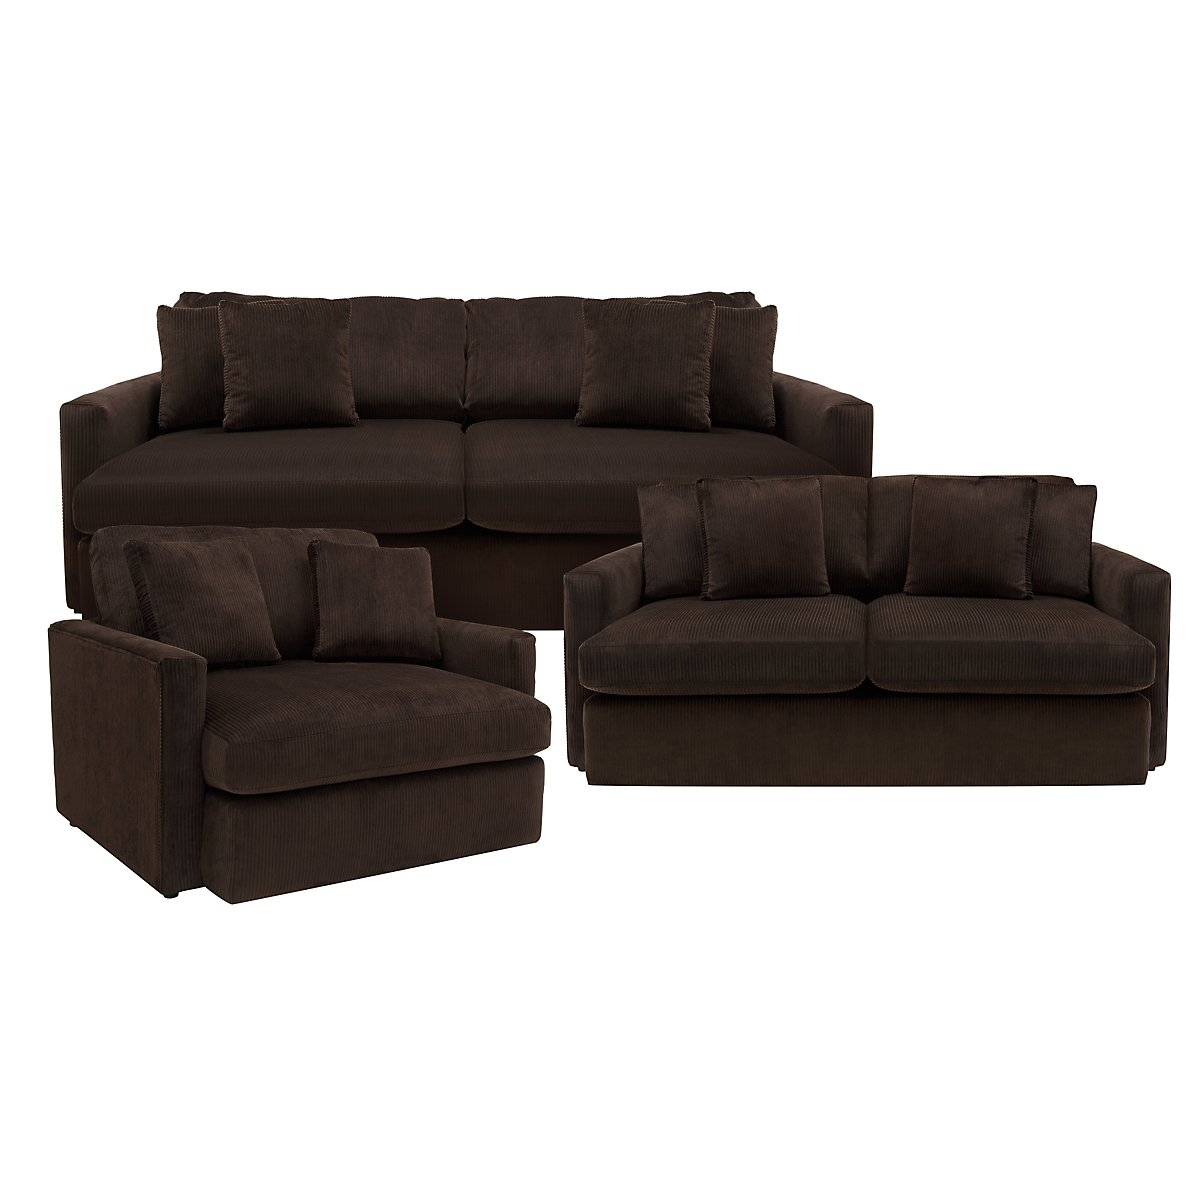 Dark Brown Microfiber Sofa Glasgow Elephant Skin Sectional TheSofa